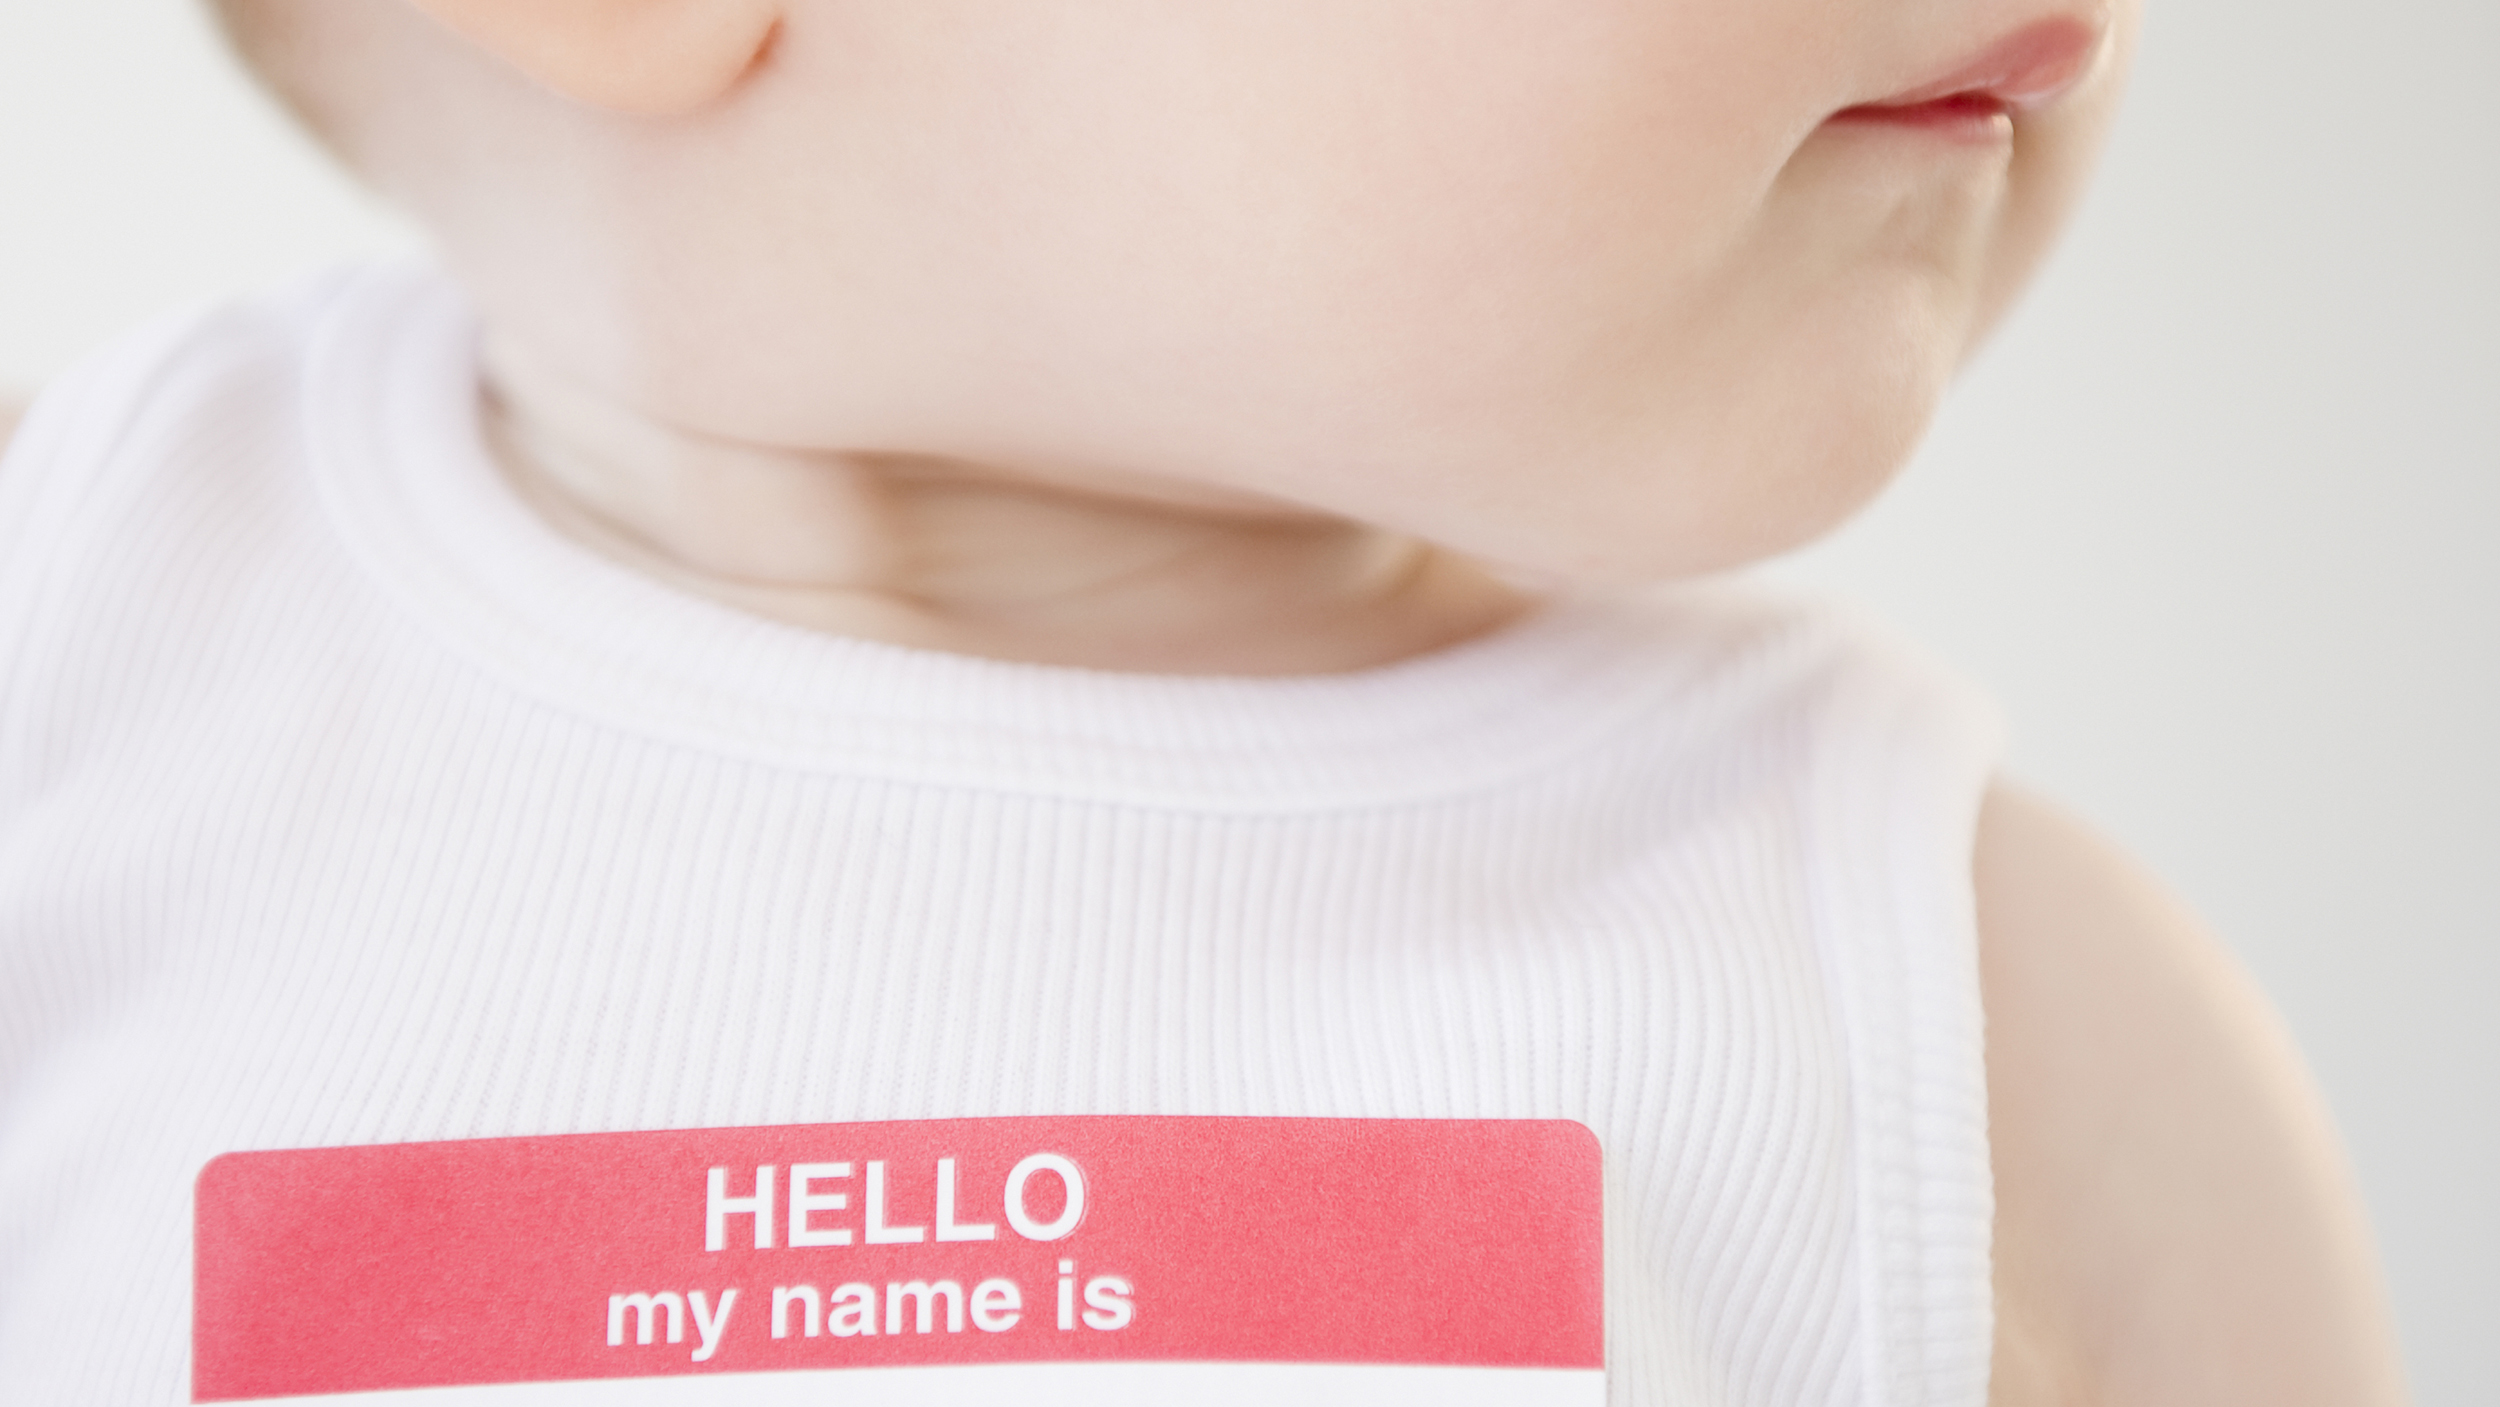 How can you name a child